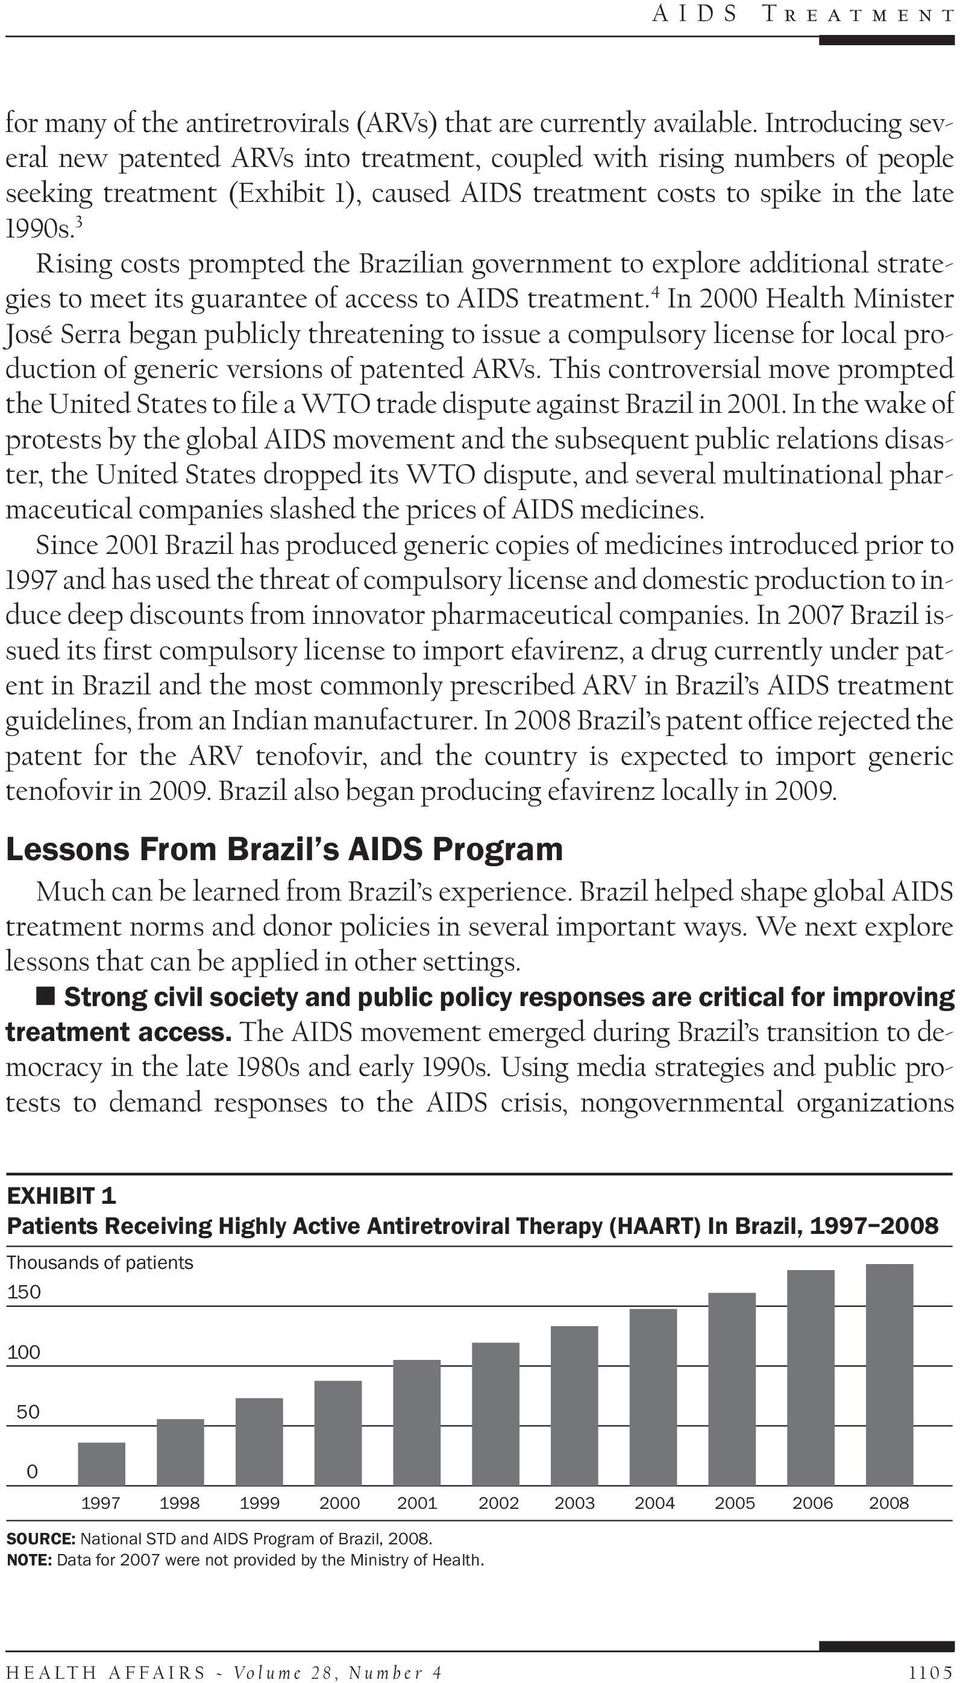 3 Rising costs prompted the Brazilian government to explore additional strategies to meet its guarantee of access to AIDS treatment.